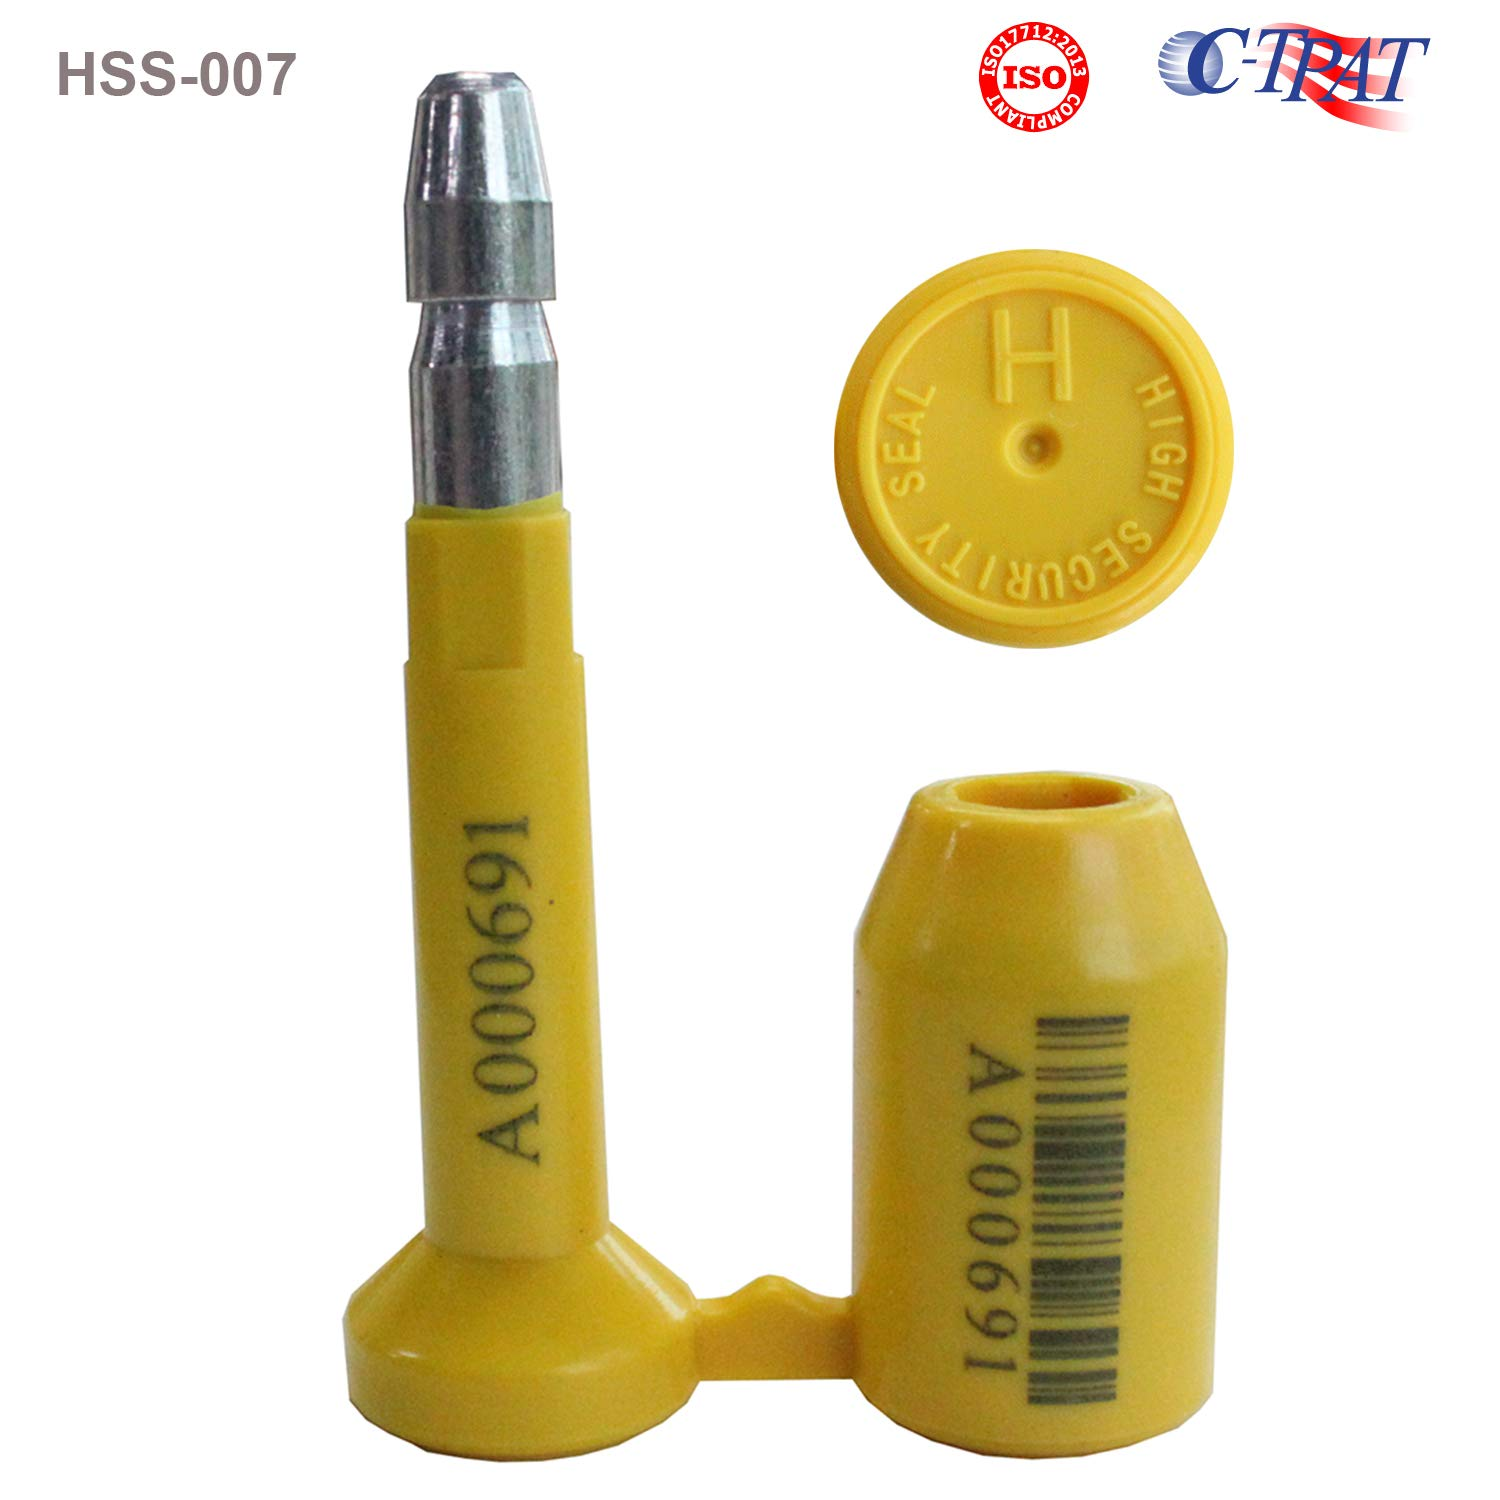 10pcs ISO and C-TPAT Certified High Security Bolt Seals for Container, Railway, Trailer, Truck, and Wagon Door Latches (Model HSS-007, Yellow, Unique Barcodes - TamperSeals) by TamperSTOP